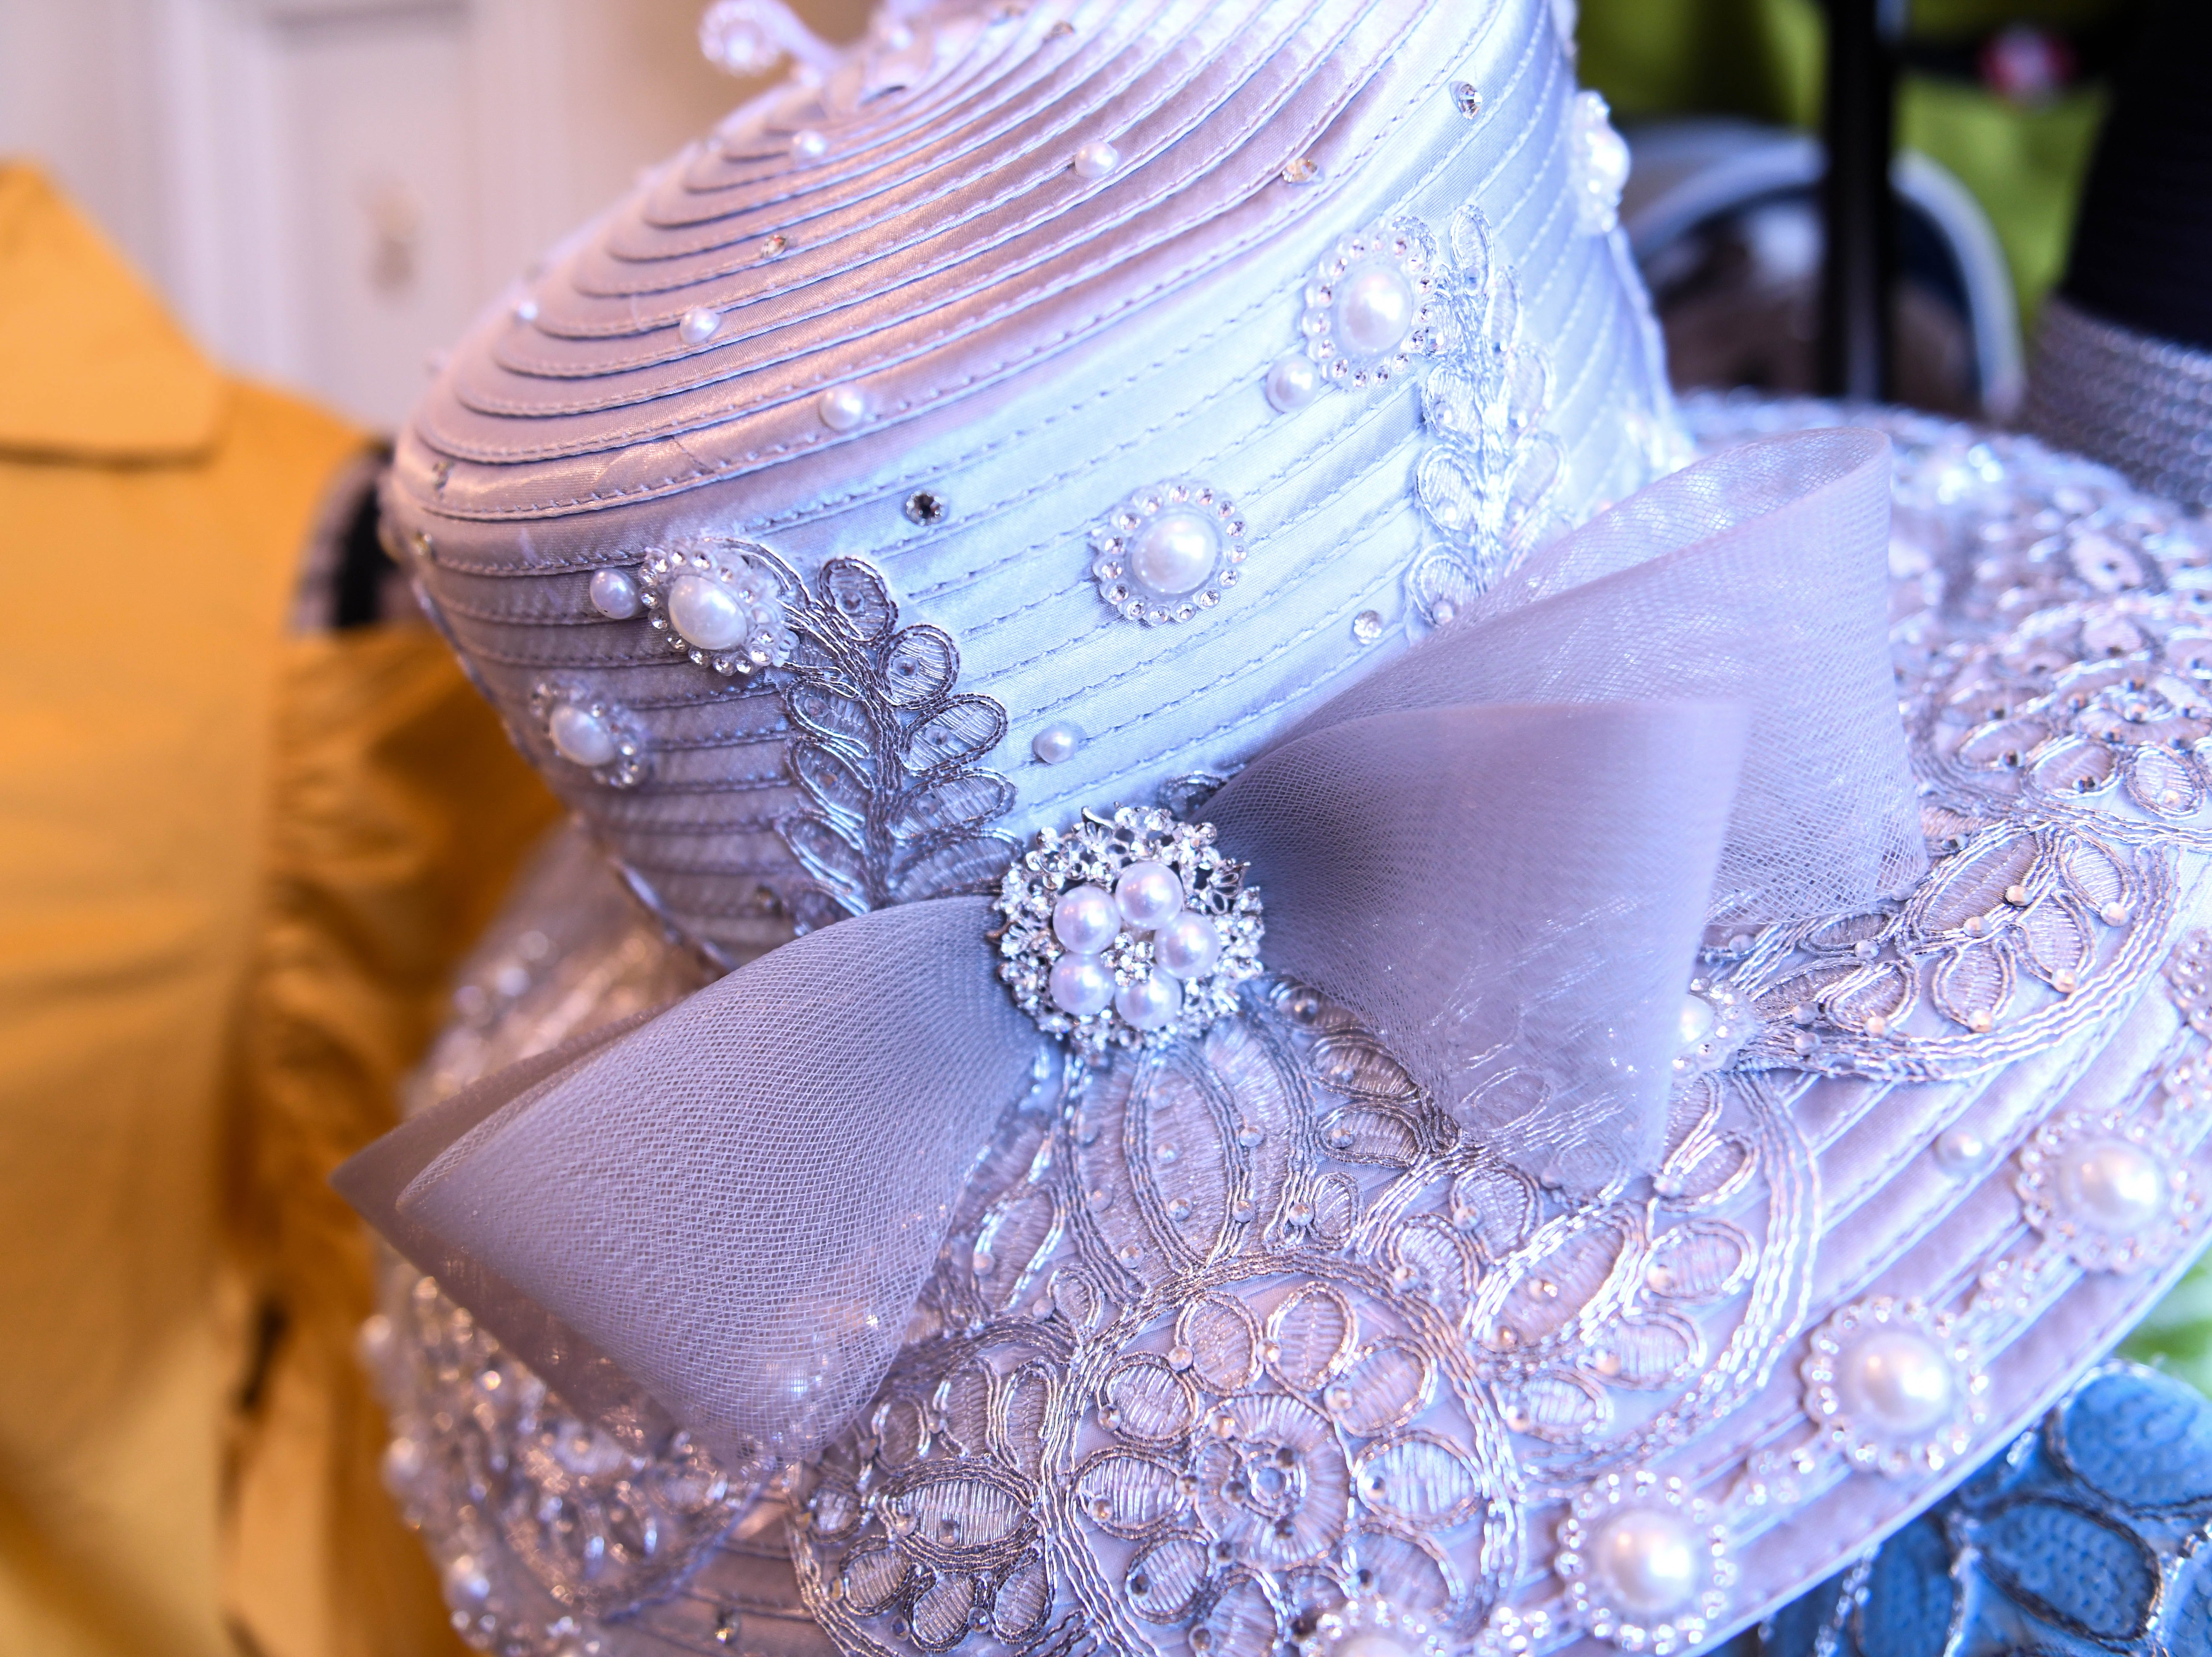 Clothes, hats and jewelry sit on display in the O Grace & Glory boutique in downtown Princess Anne on Tuesday, Feb. 26, 2019.